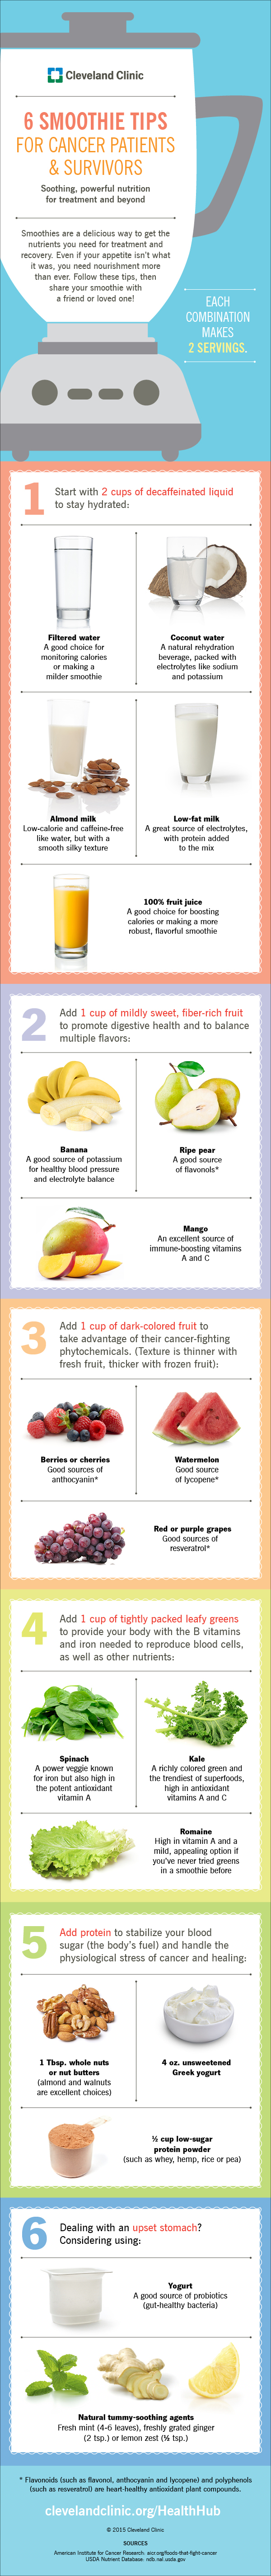 Glasses Full of Nutrition for Cancer Patients and Survivors: 6 Smoothie Tips - Infographic